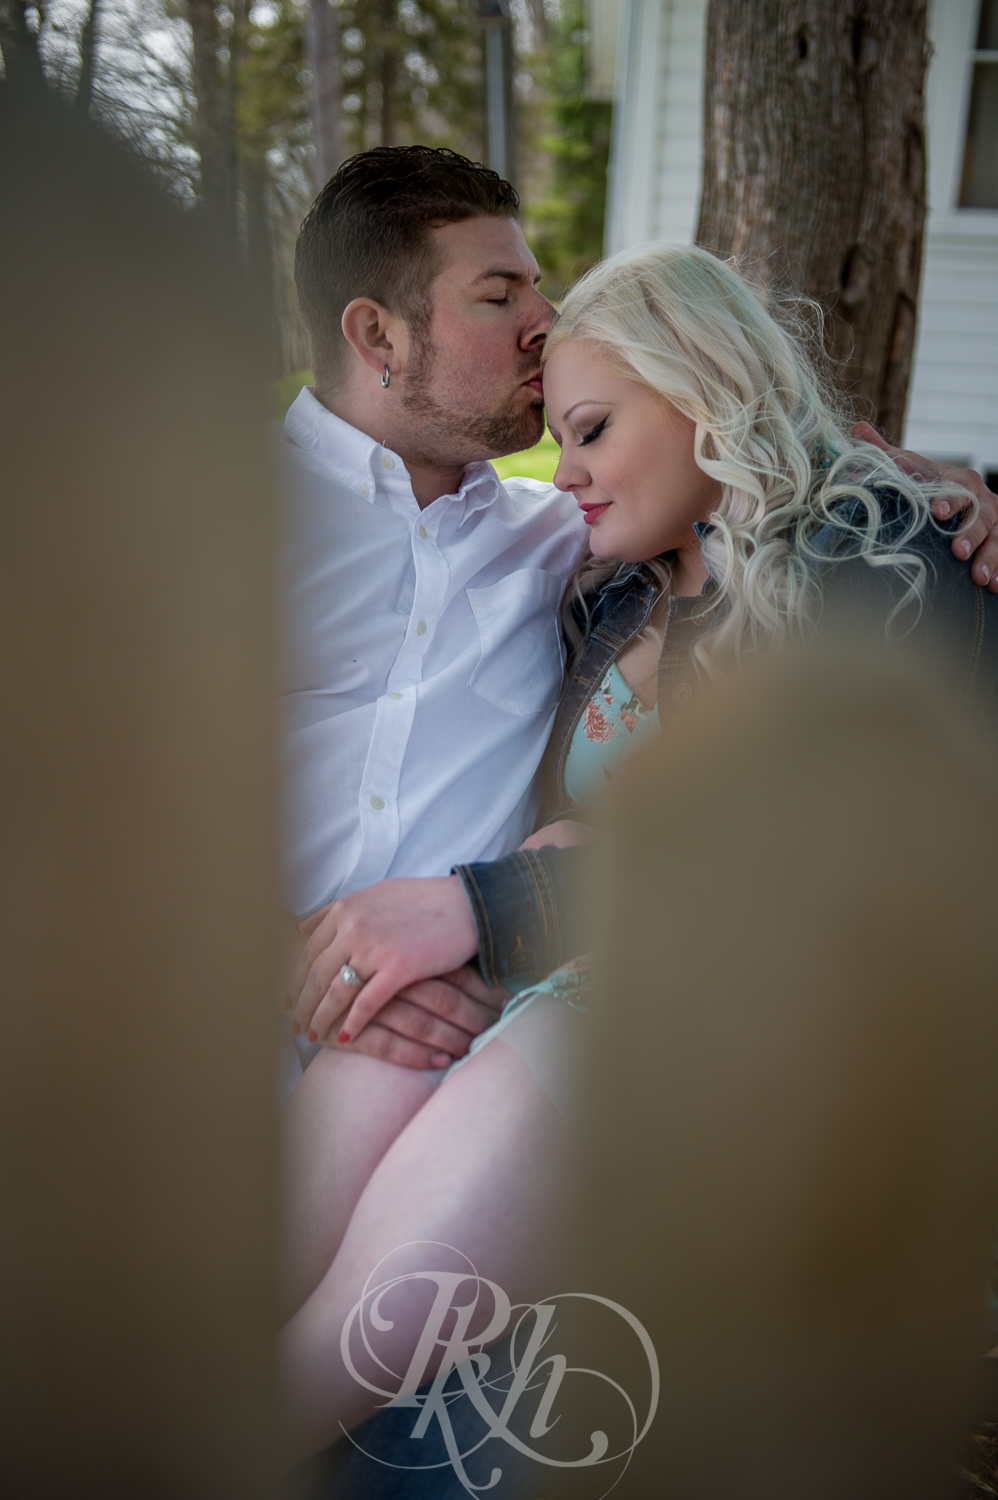 Erica & Shawn - Minnesota Engagement Photography - RKH Images -6.jpg